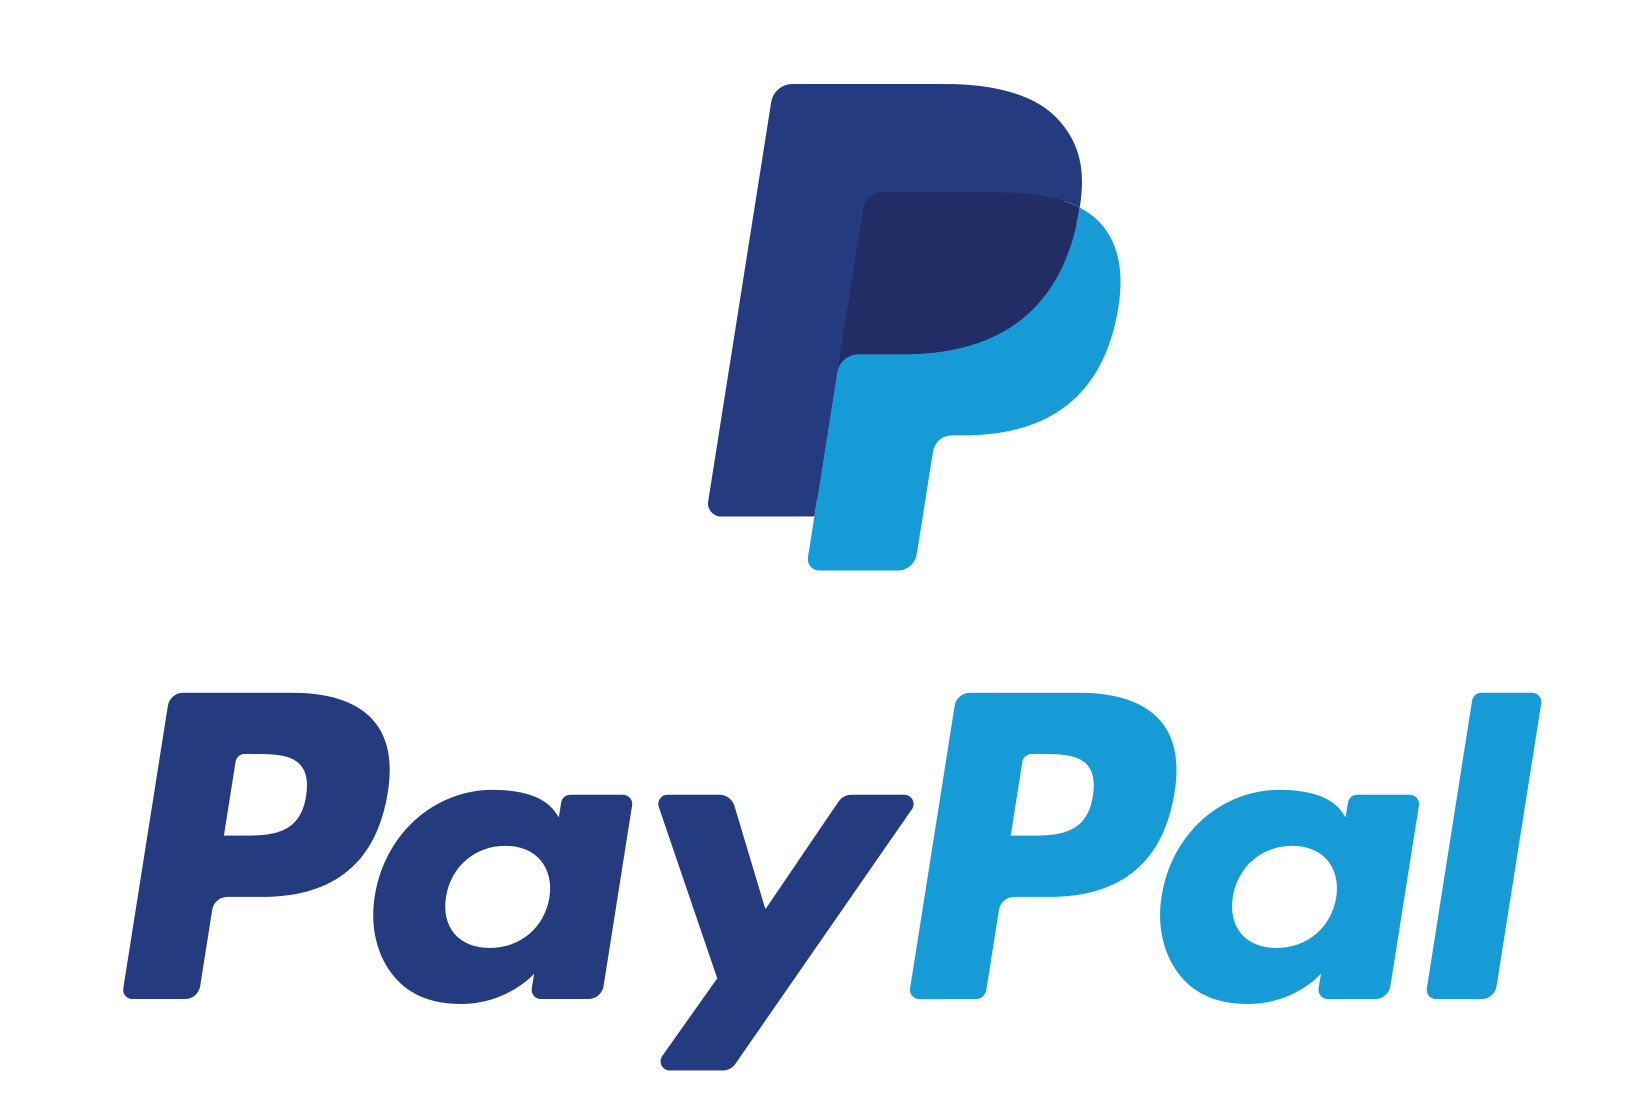 Paypal png logo. Associate manager consumer strategy